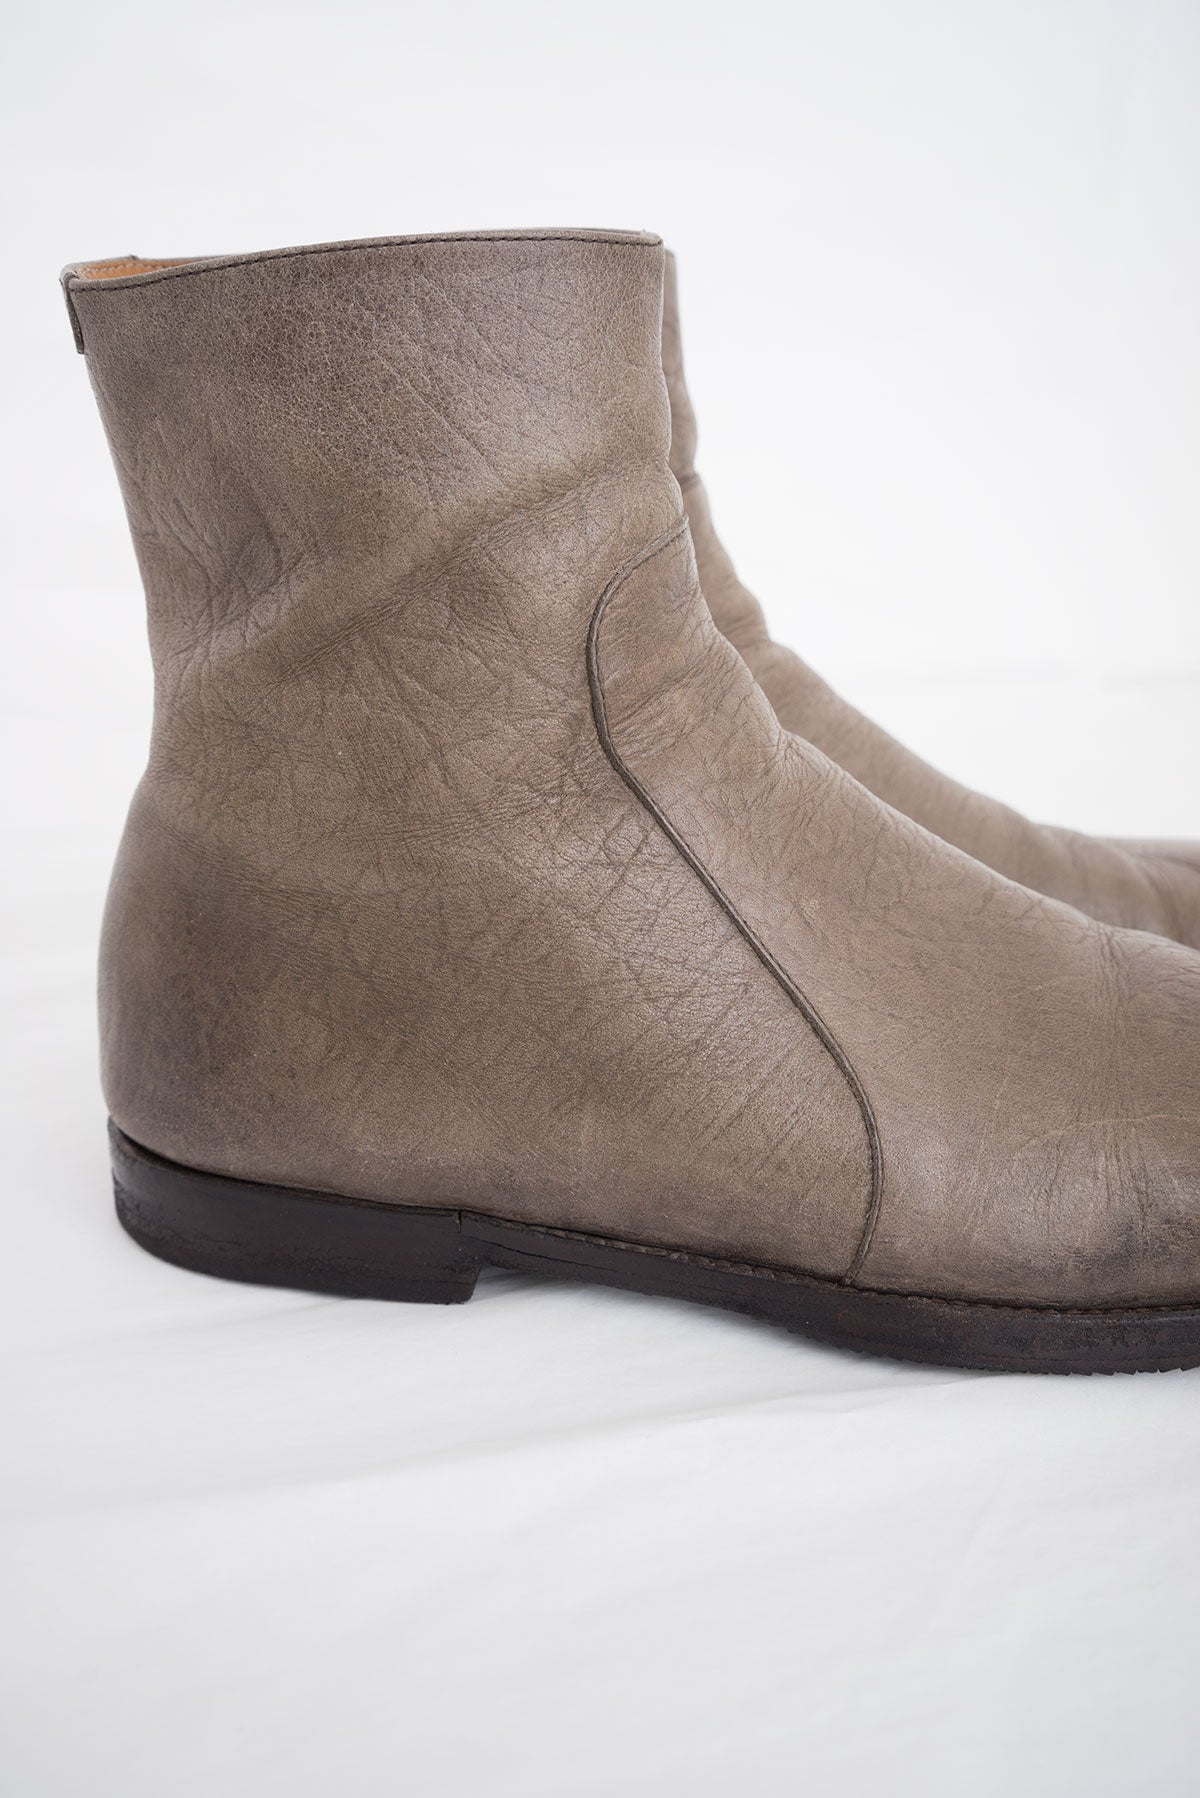 2008 A/W SIDE-ZIP BOOTS IN PERFORATED LEATHER